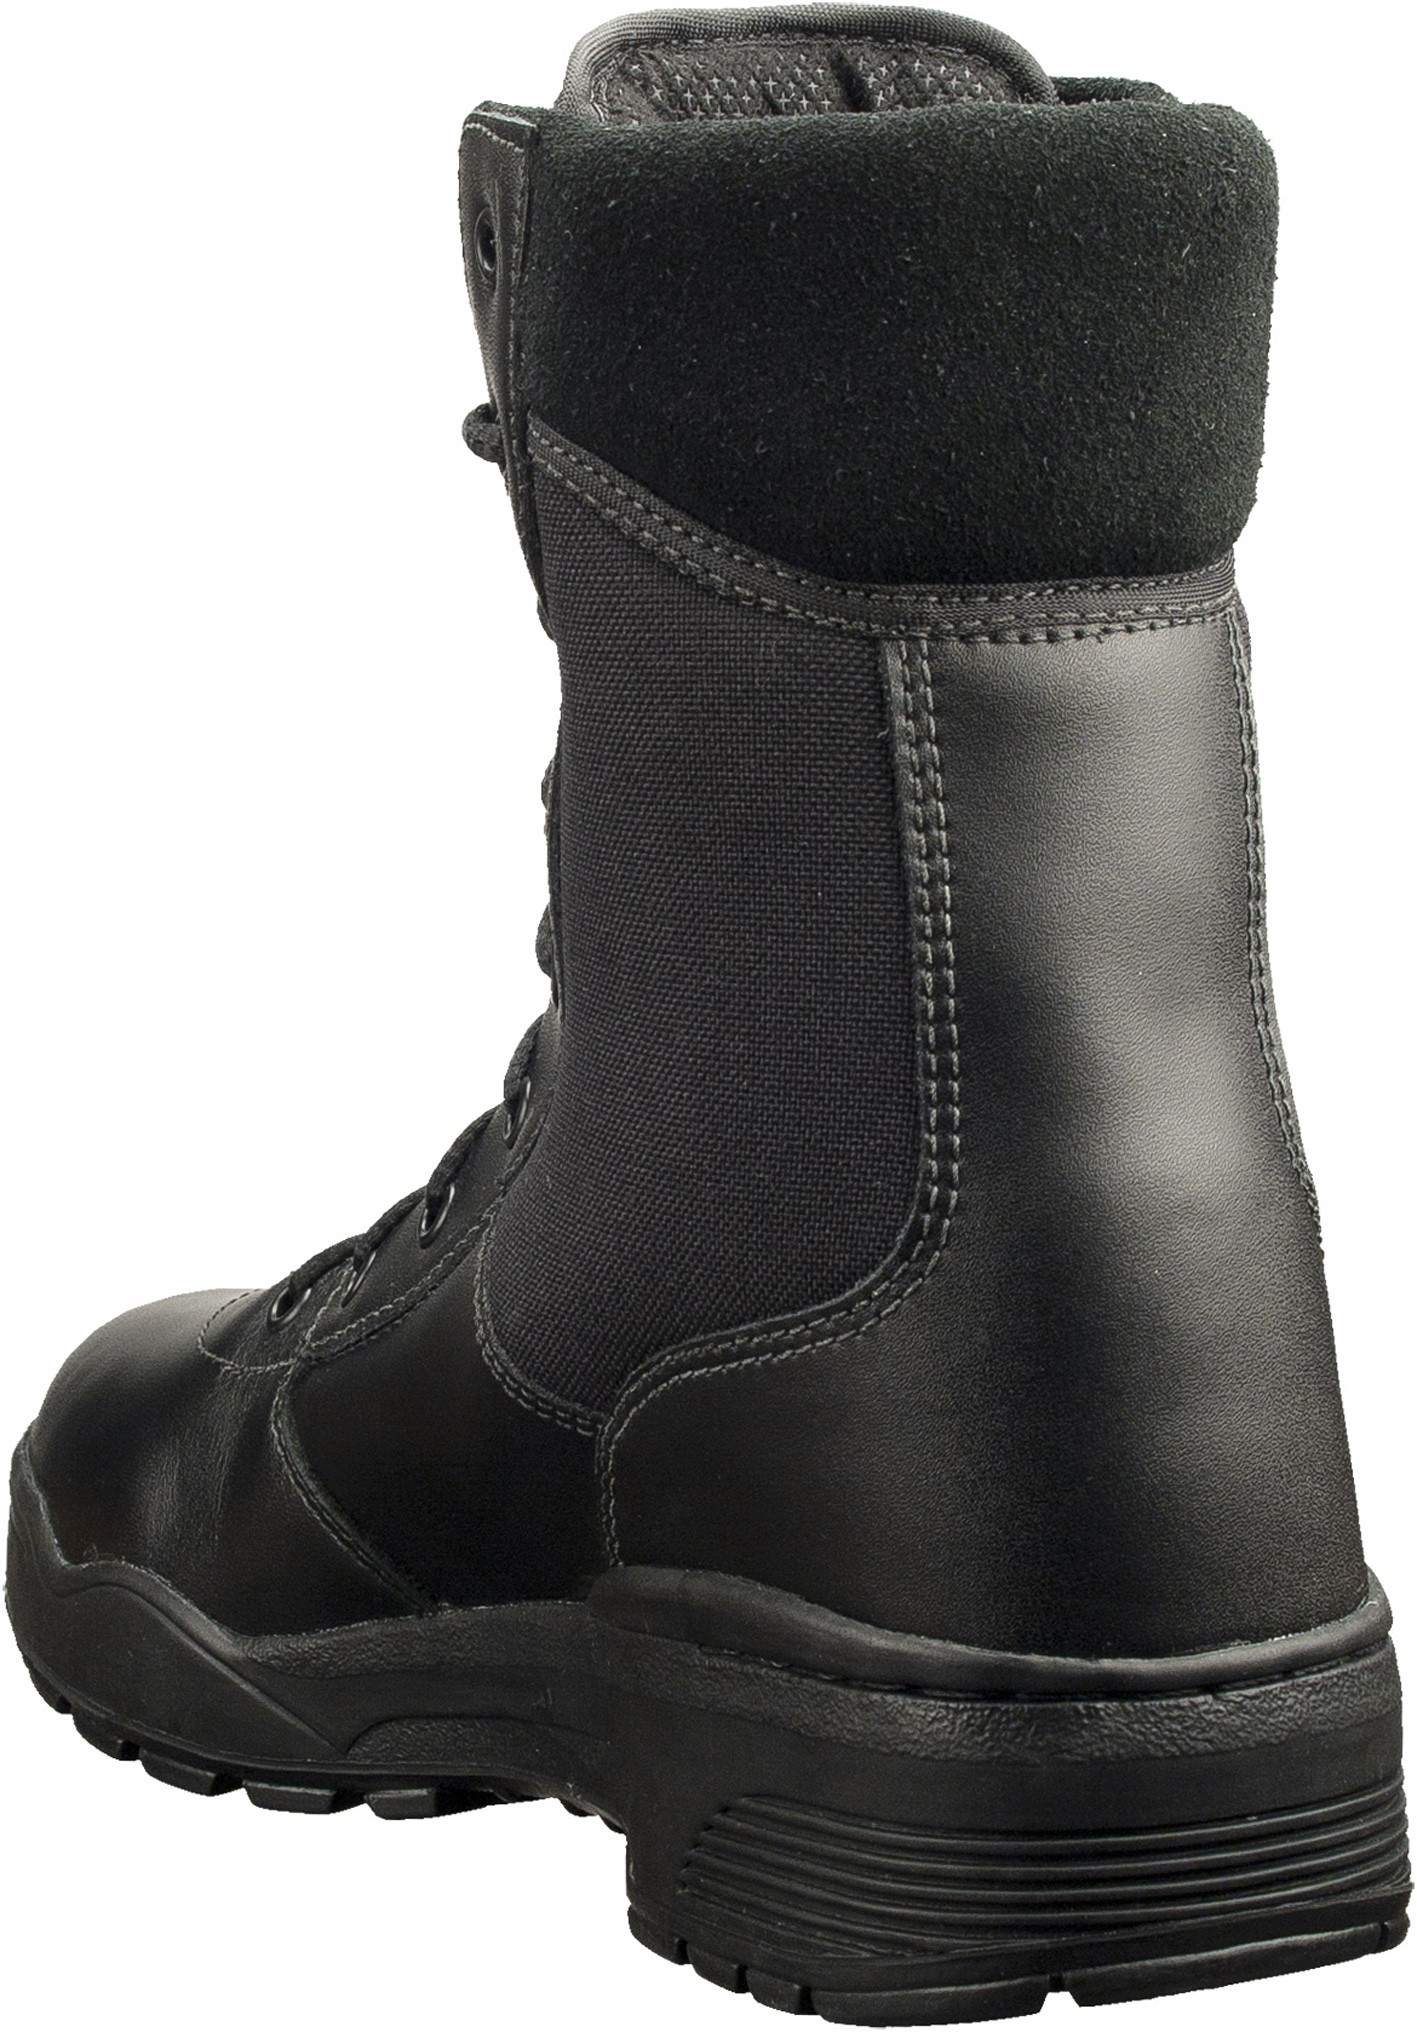 Magnum Classic Cen Boots By Magnum For 163 75 00